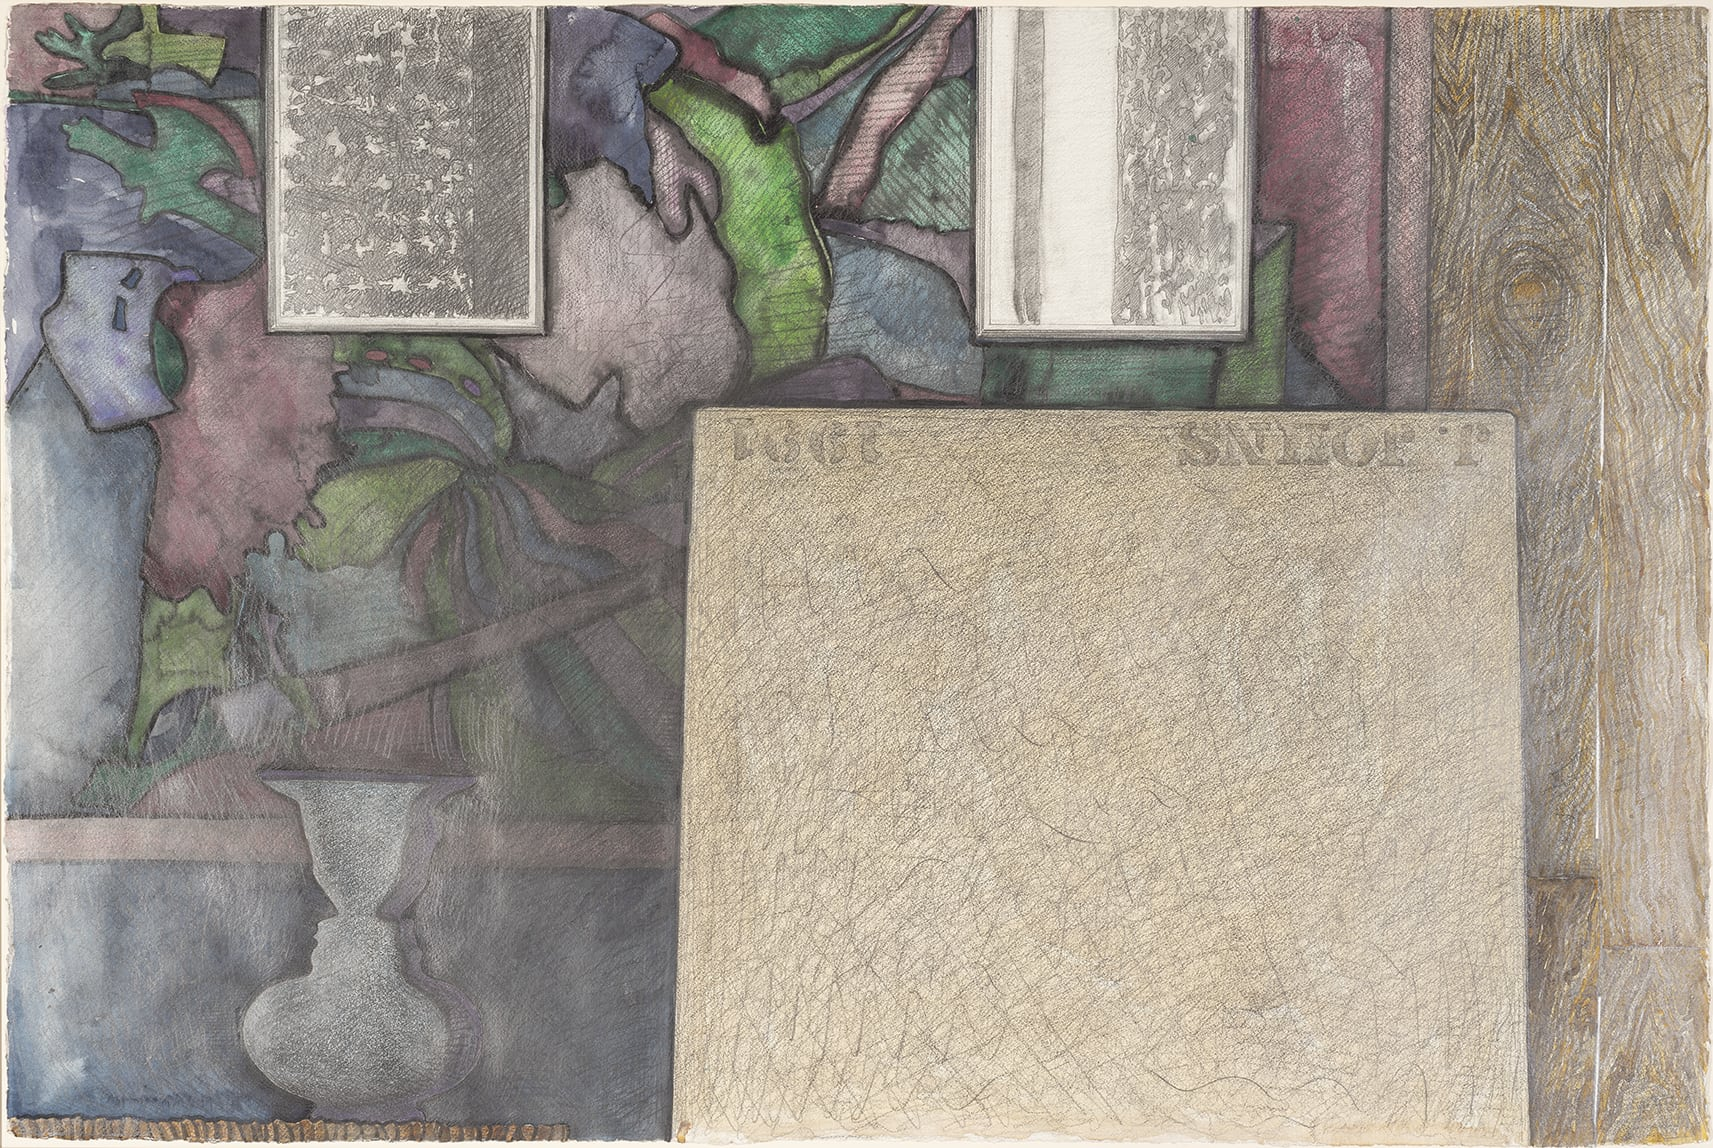 The Jewish Museum Receives Major Gift of Artworks and Funds from The Barnett and Annalee Newman Foundation